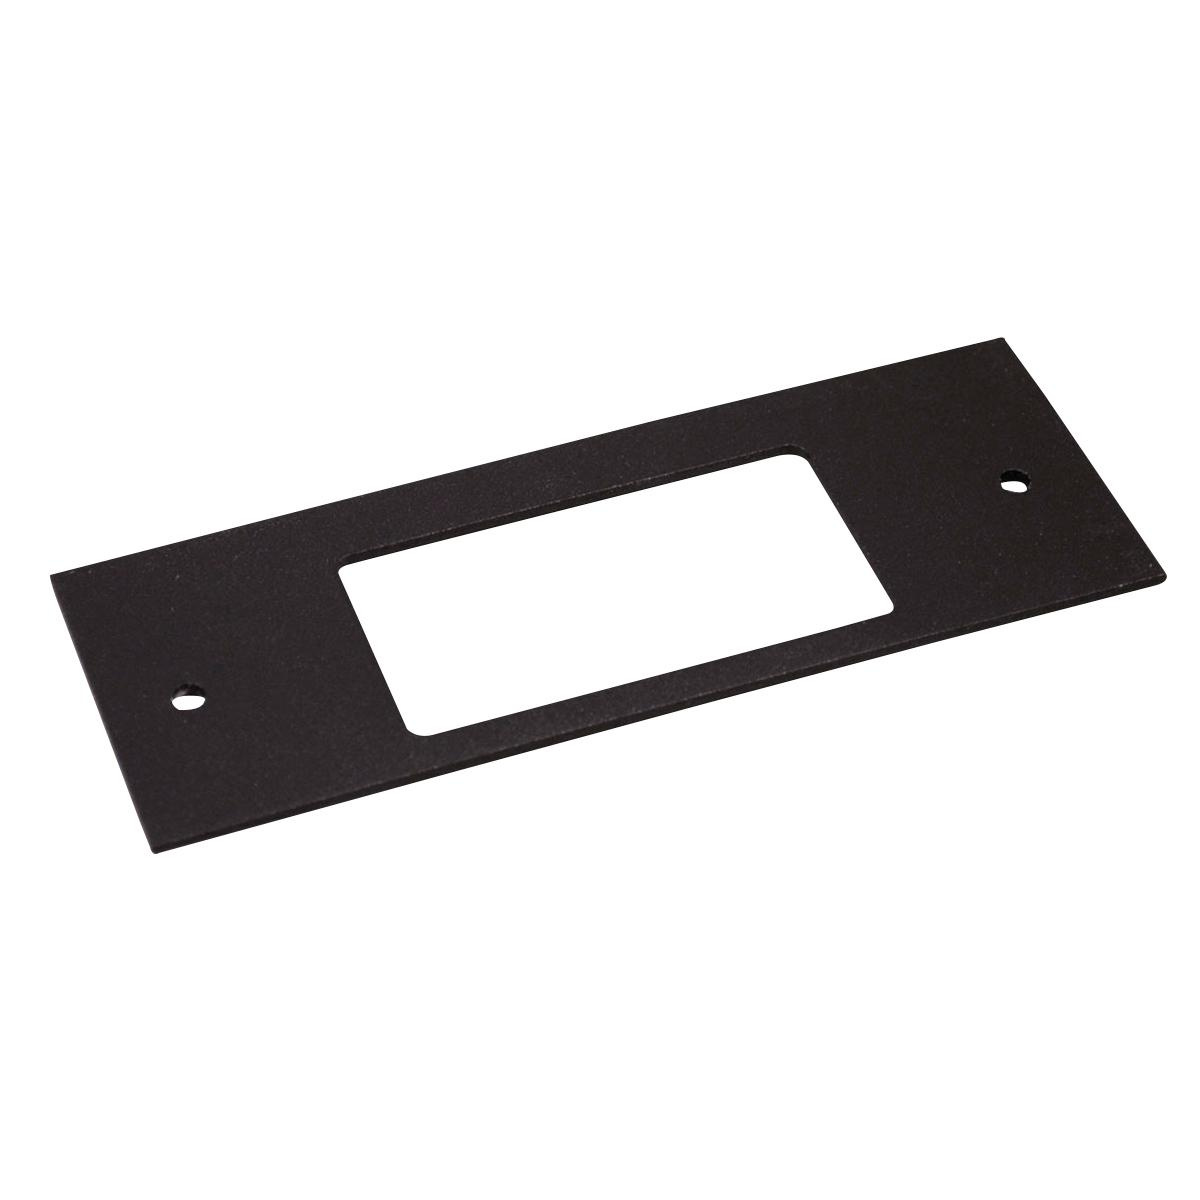 Wiremold Ofr47 R Decorator Device Plate Steel Black Powder Coated